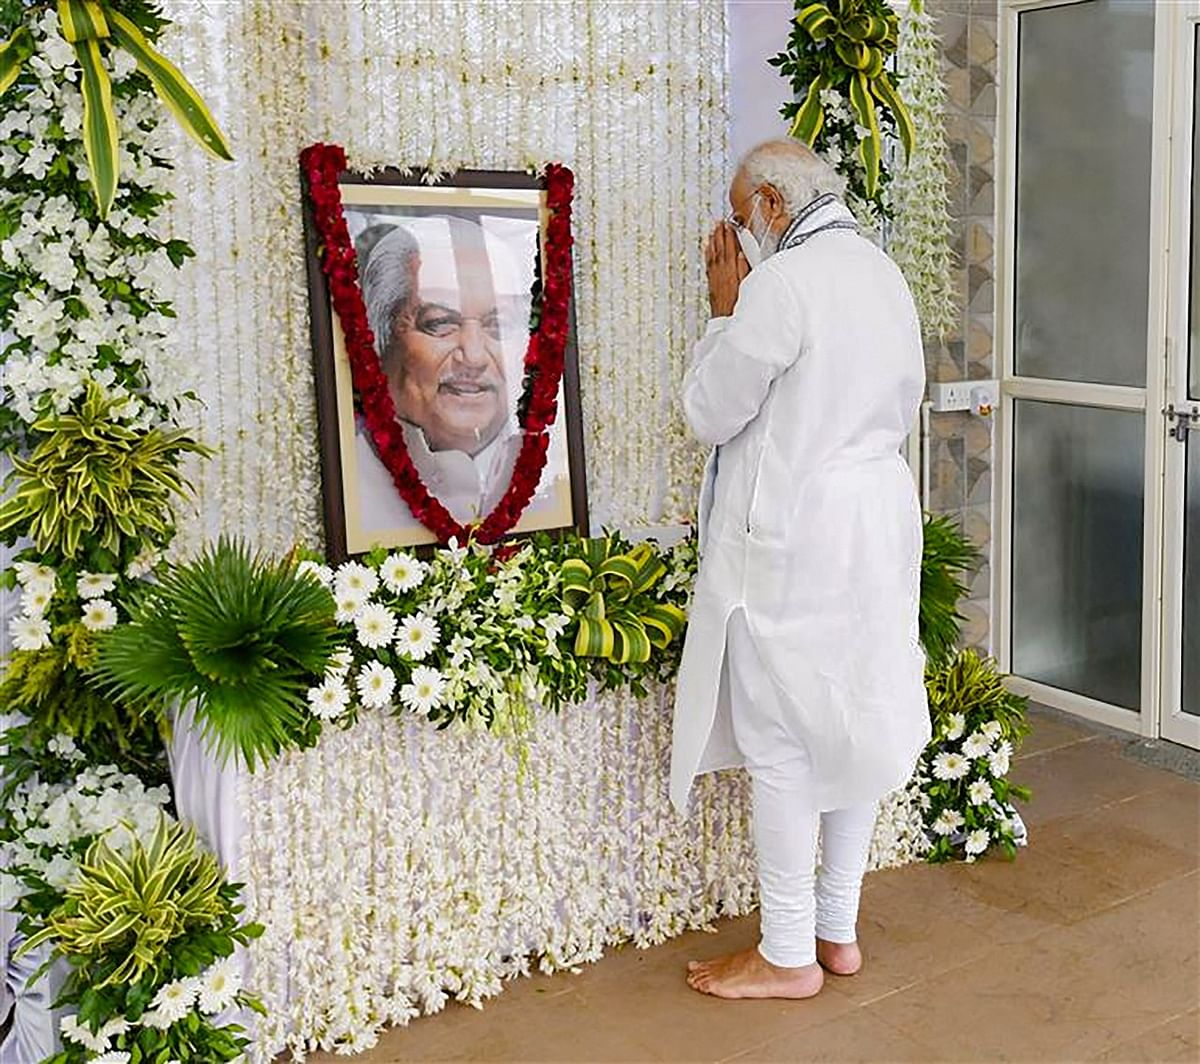 Prime Minister Narendra Modi pays tribute to former Gujarat chief minister late Keshubhai Patel in Gandhinagar, Friday, 30 October.